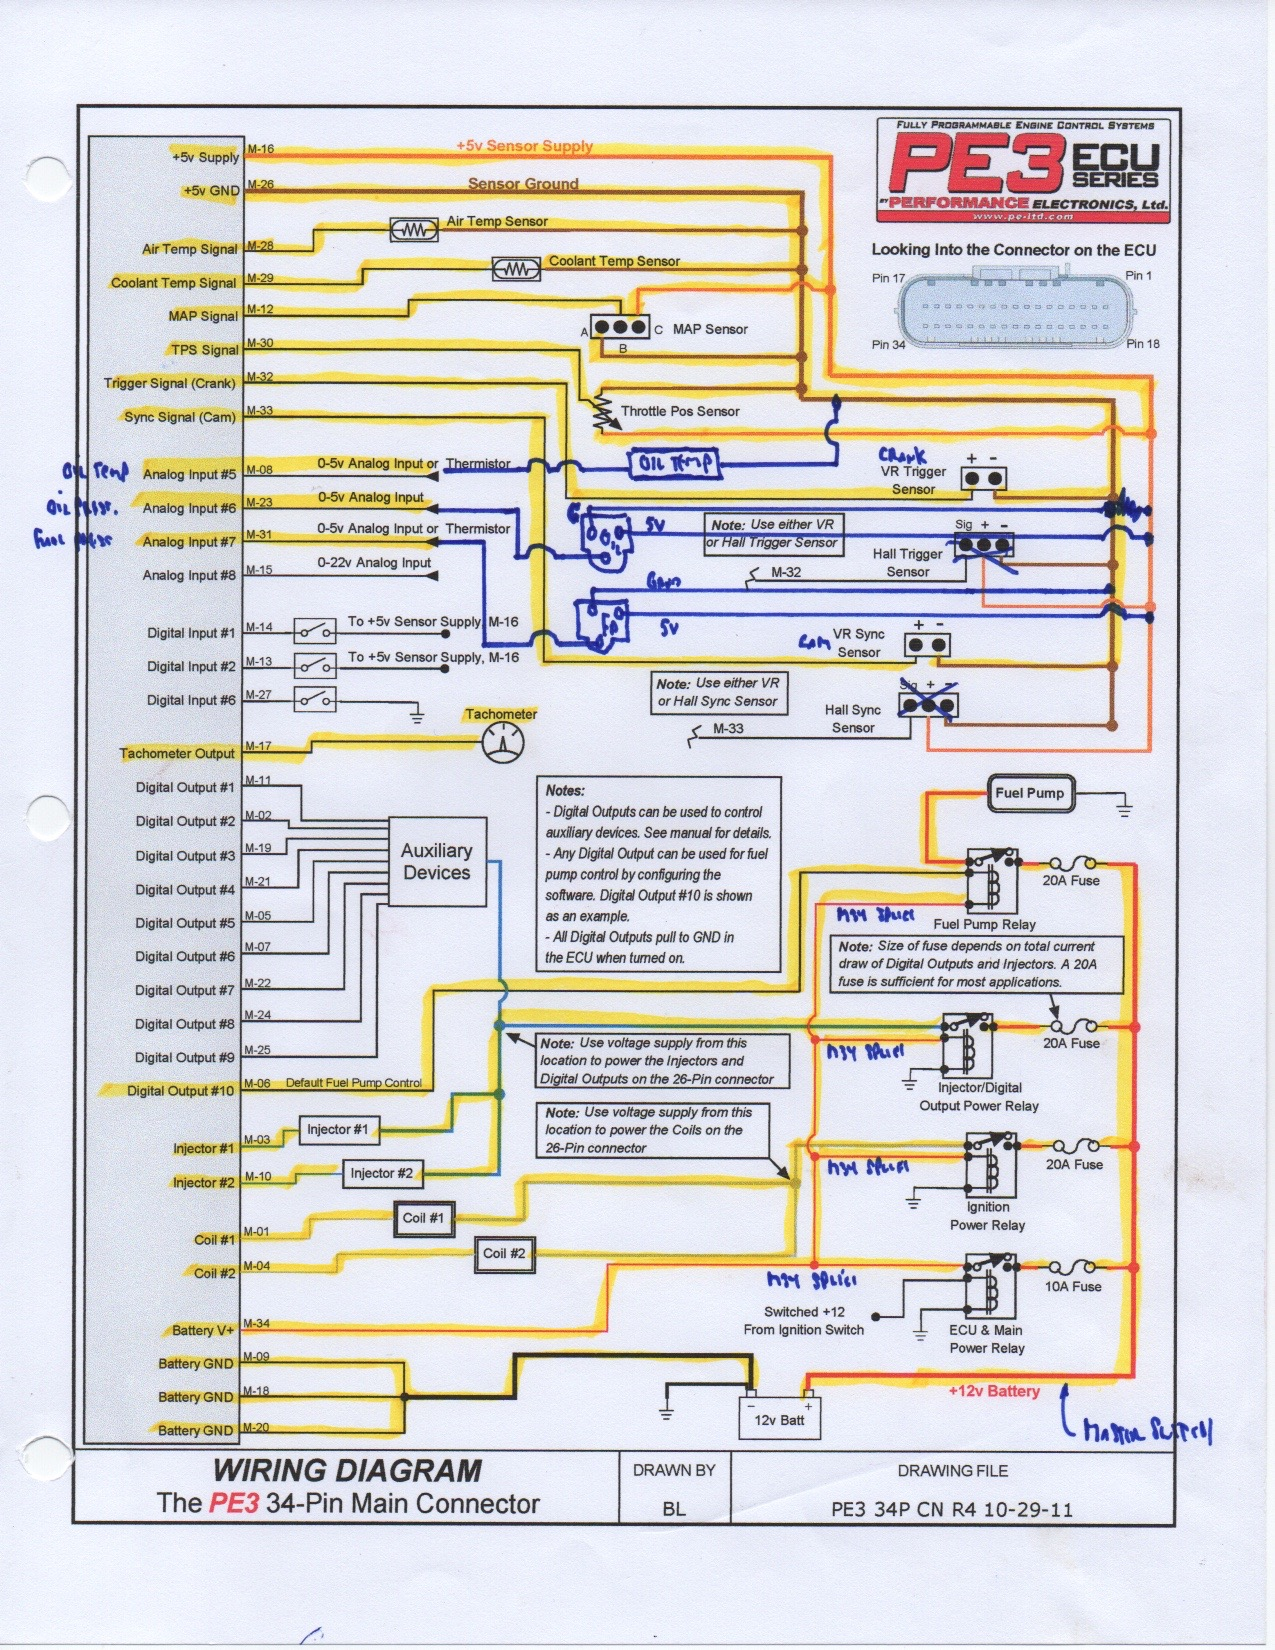 performance electronics factory wiring diagrams junk yard zetec badlands electronics wiring-diagram one of the reasons this project was so daunting was the complexity of the wiring diagrams the cars i'd worked on in the 80's only had about 11 or 12 wires